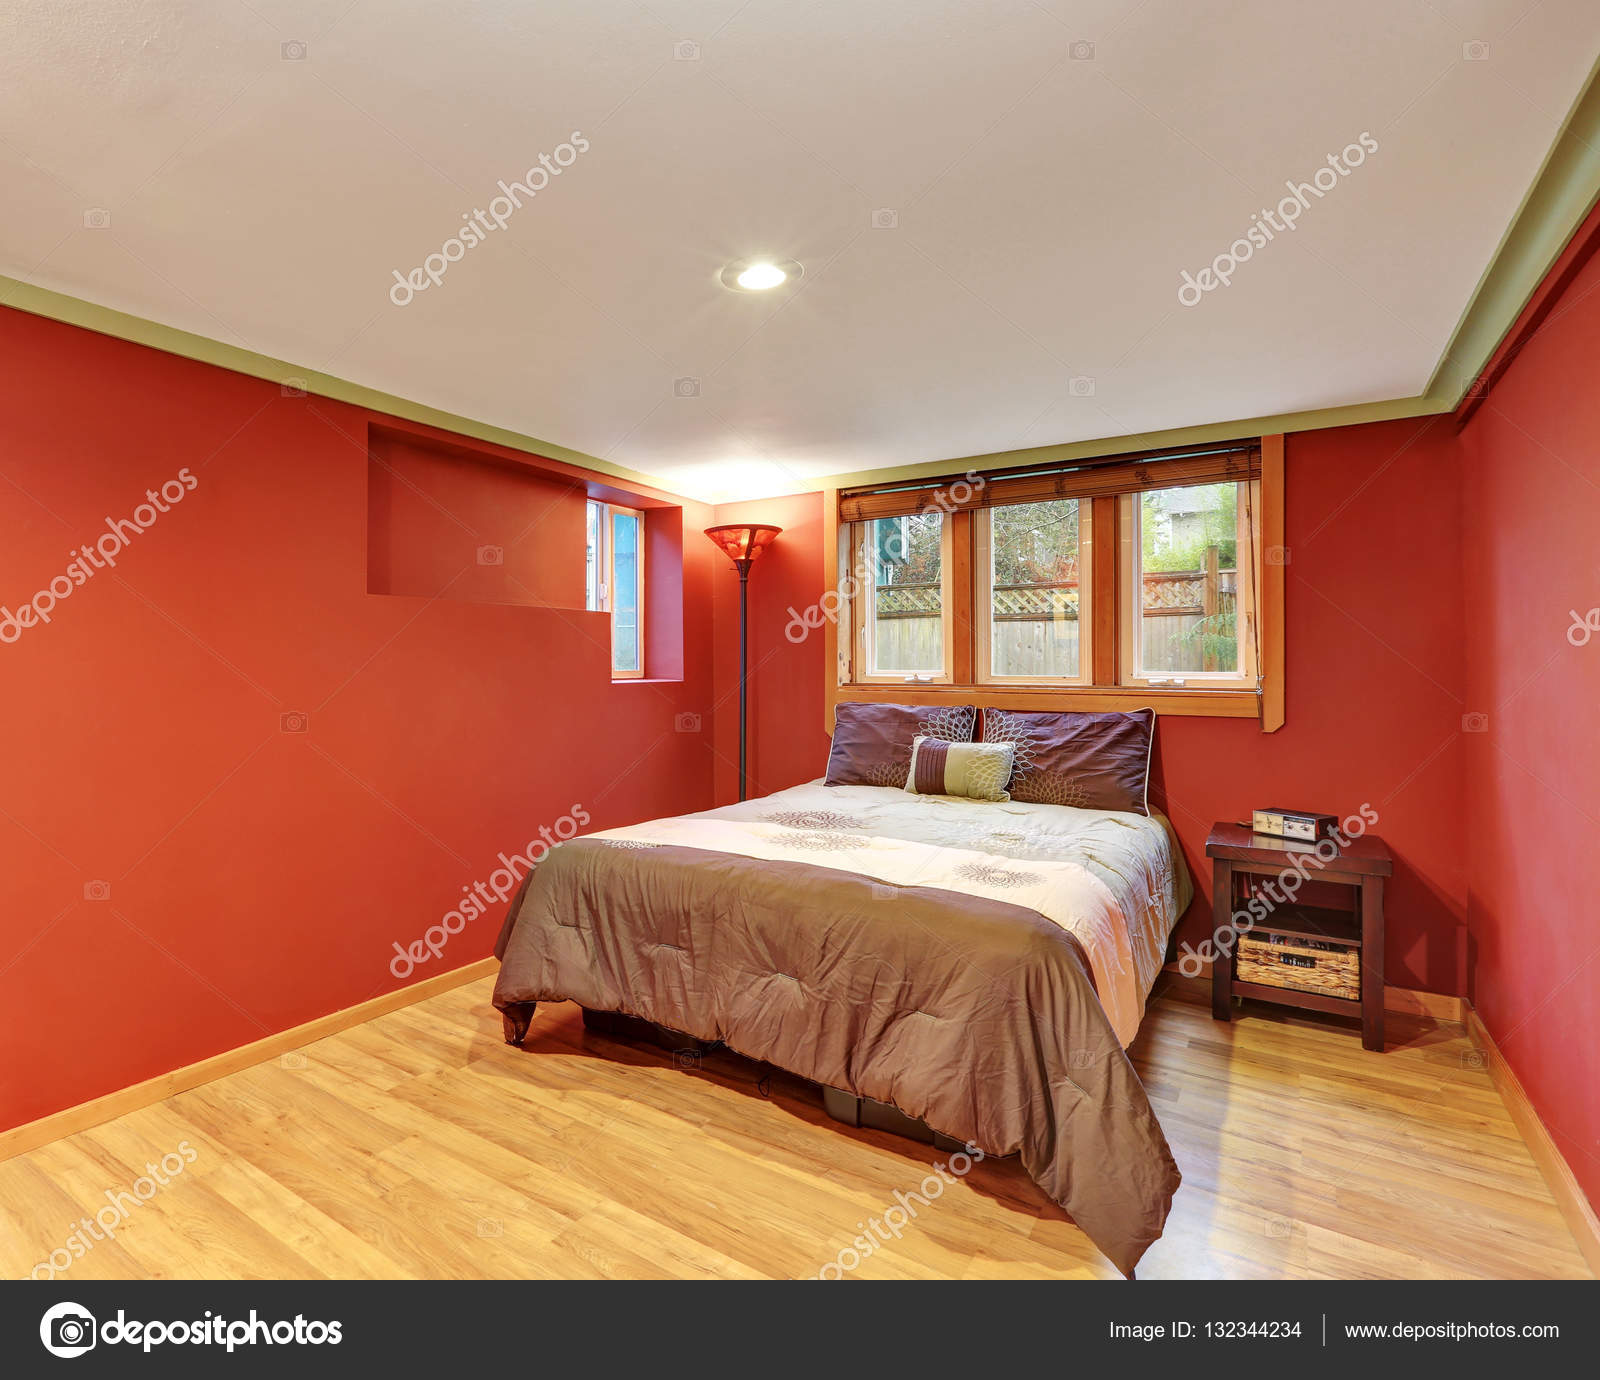 Red bedroom interior design in American bungalow  Stock Photo #132344234